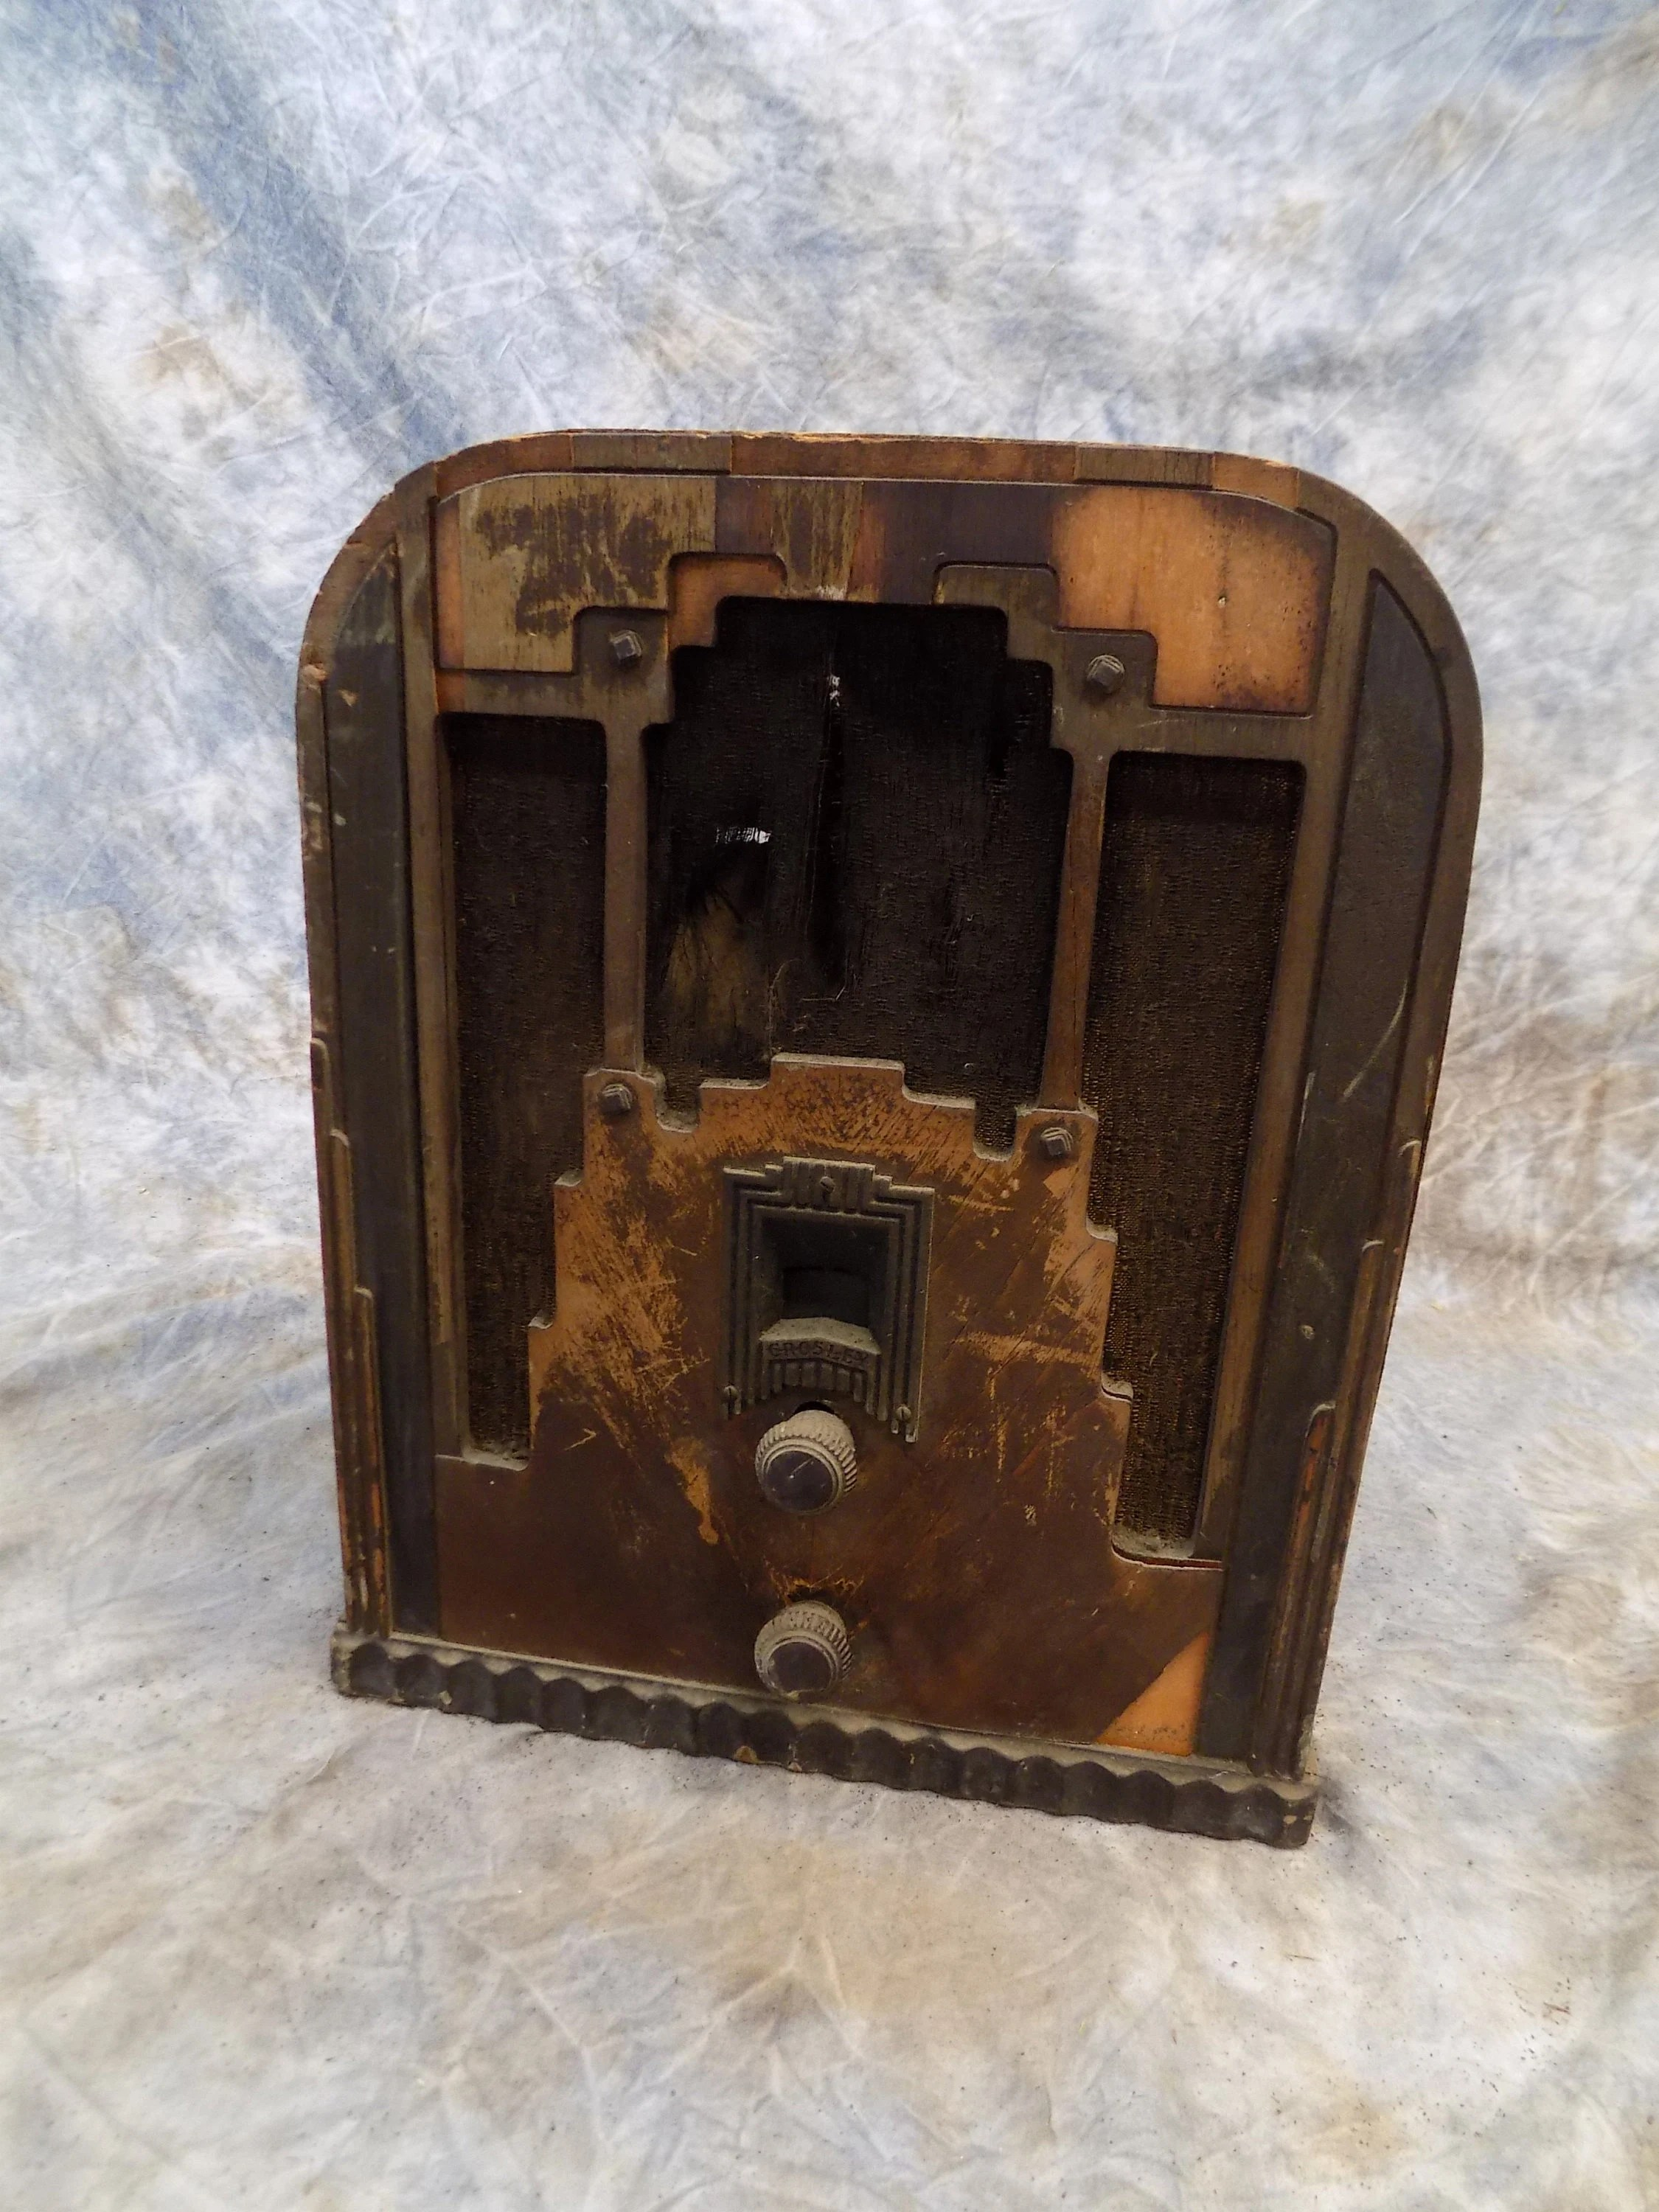 Crosley Radio 1934 Crosley Tube Radio Model 148 New Fiver Art Deco Tombstone Vintage Vintage Tube Radio Crosley Radio Vintage Radio